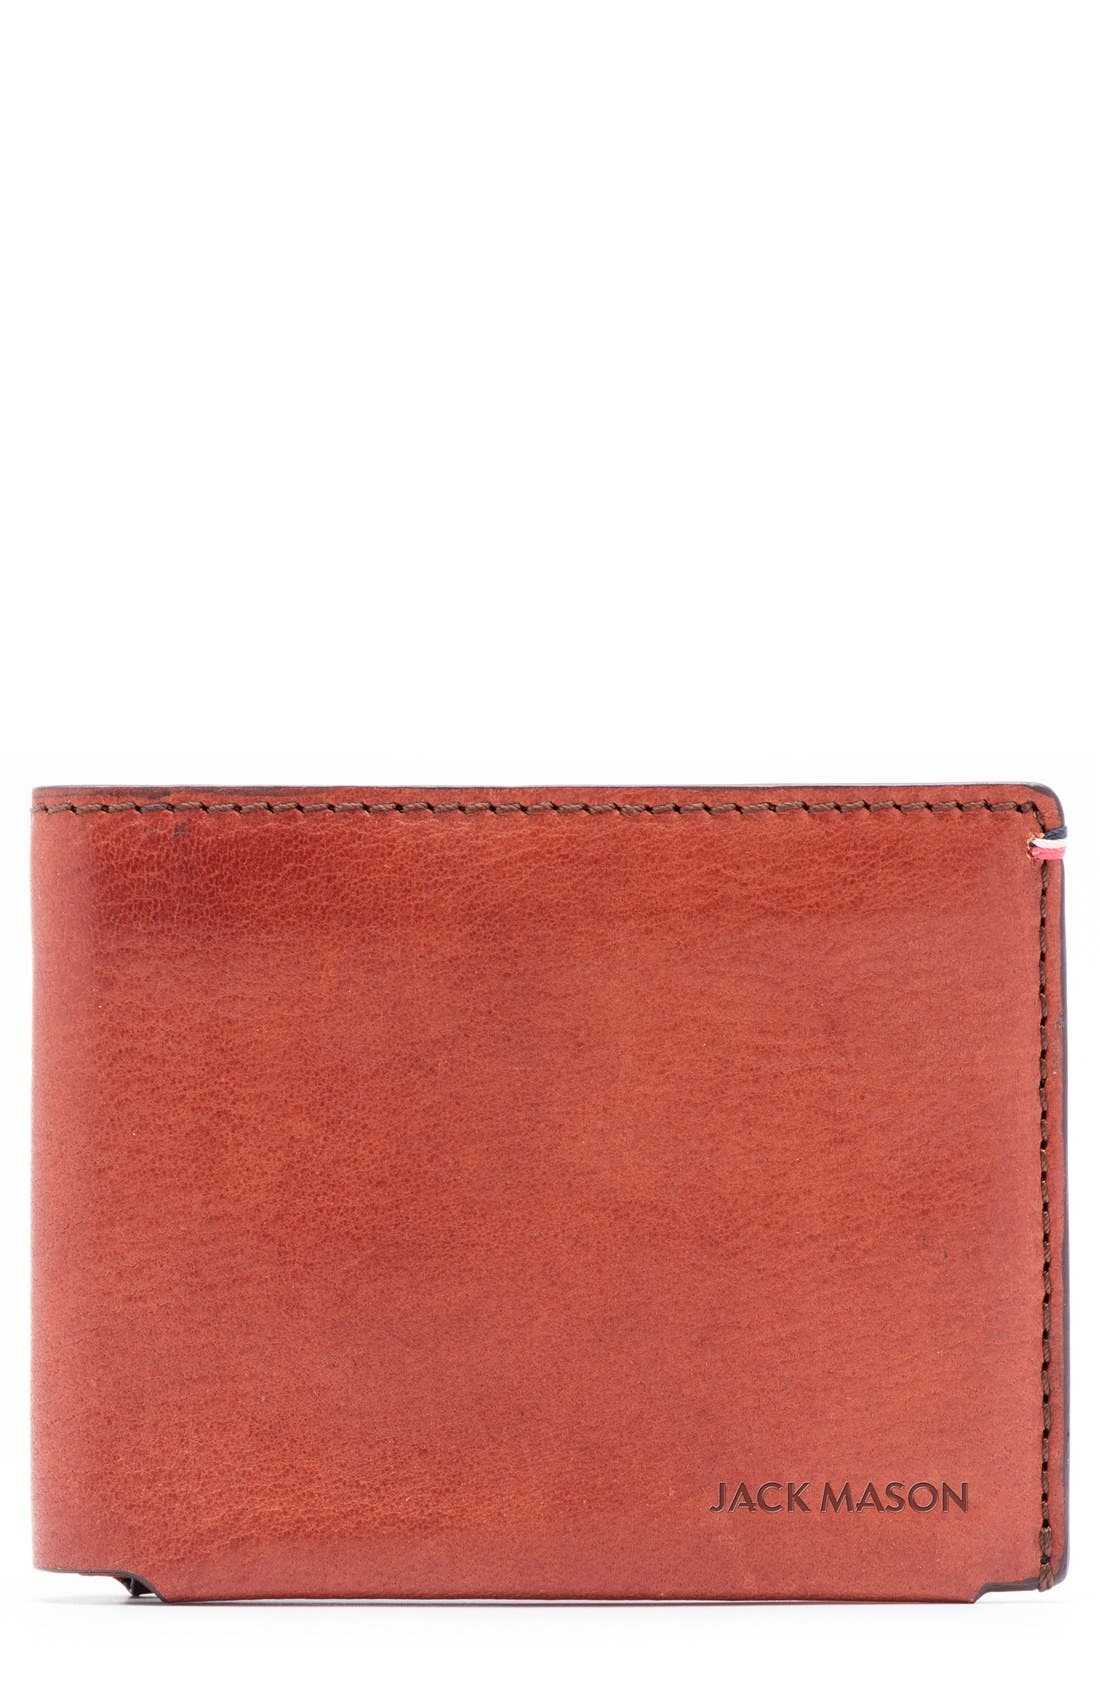 Main Image - Jack Mason Pebbled Leather Wallet